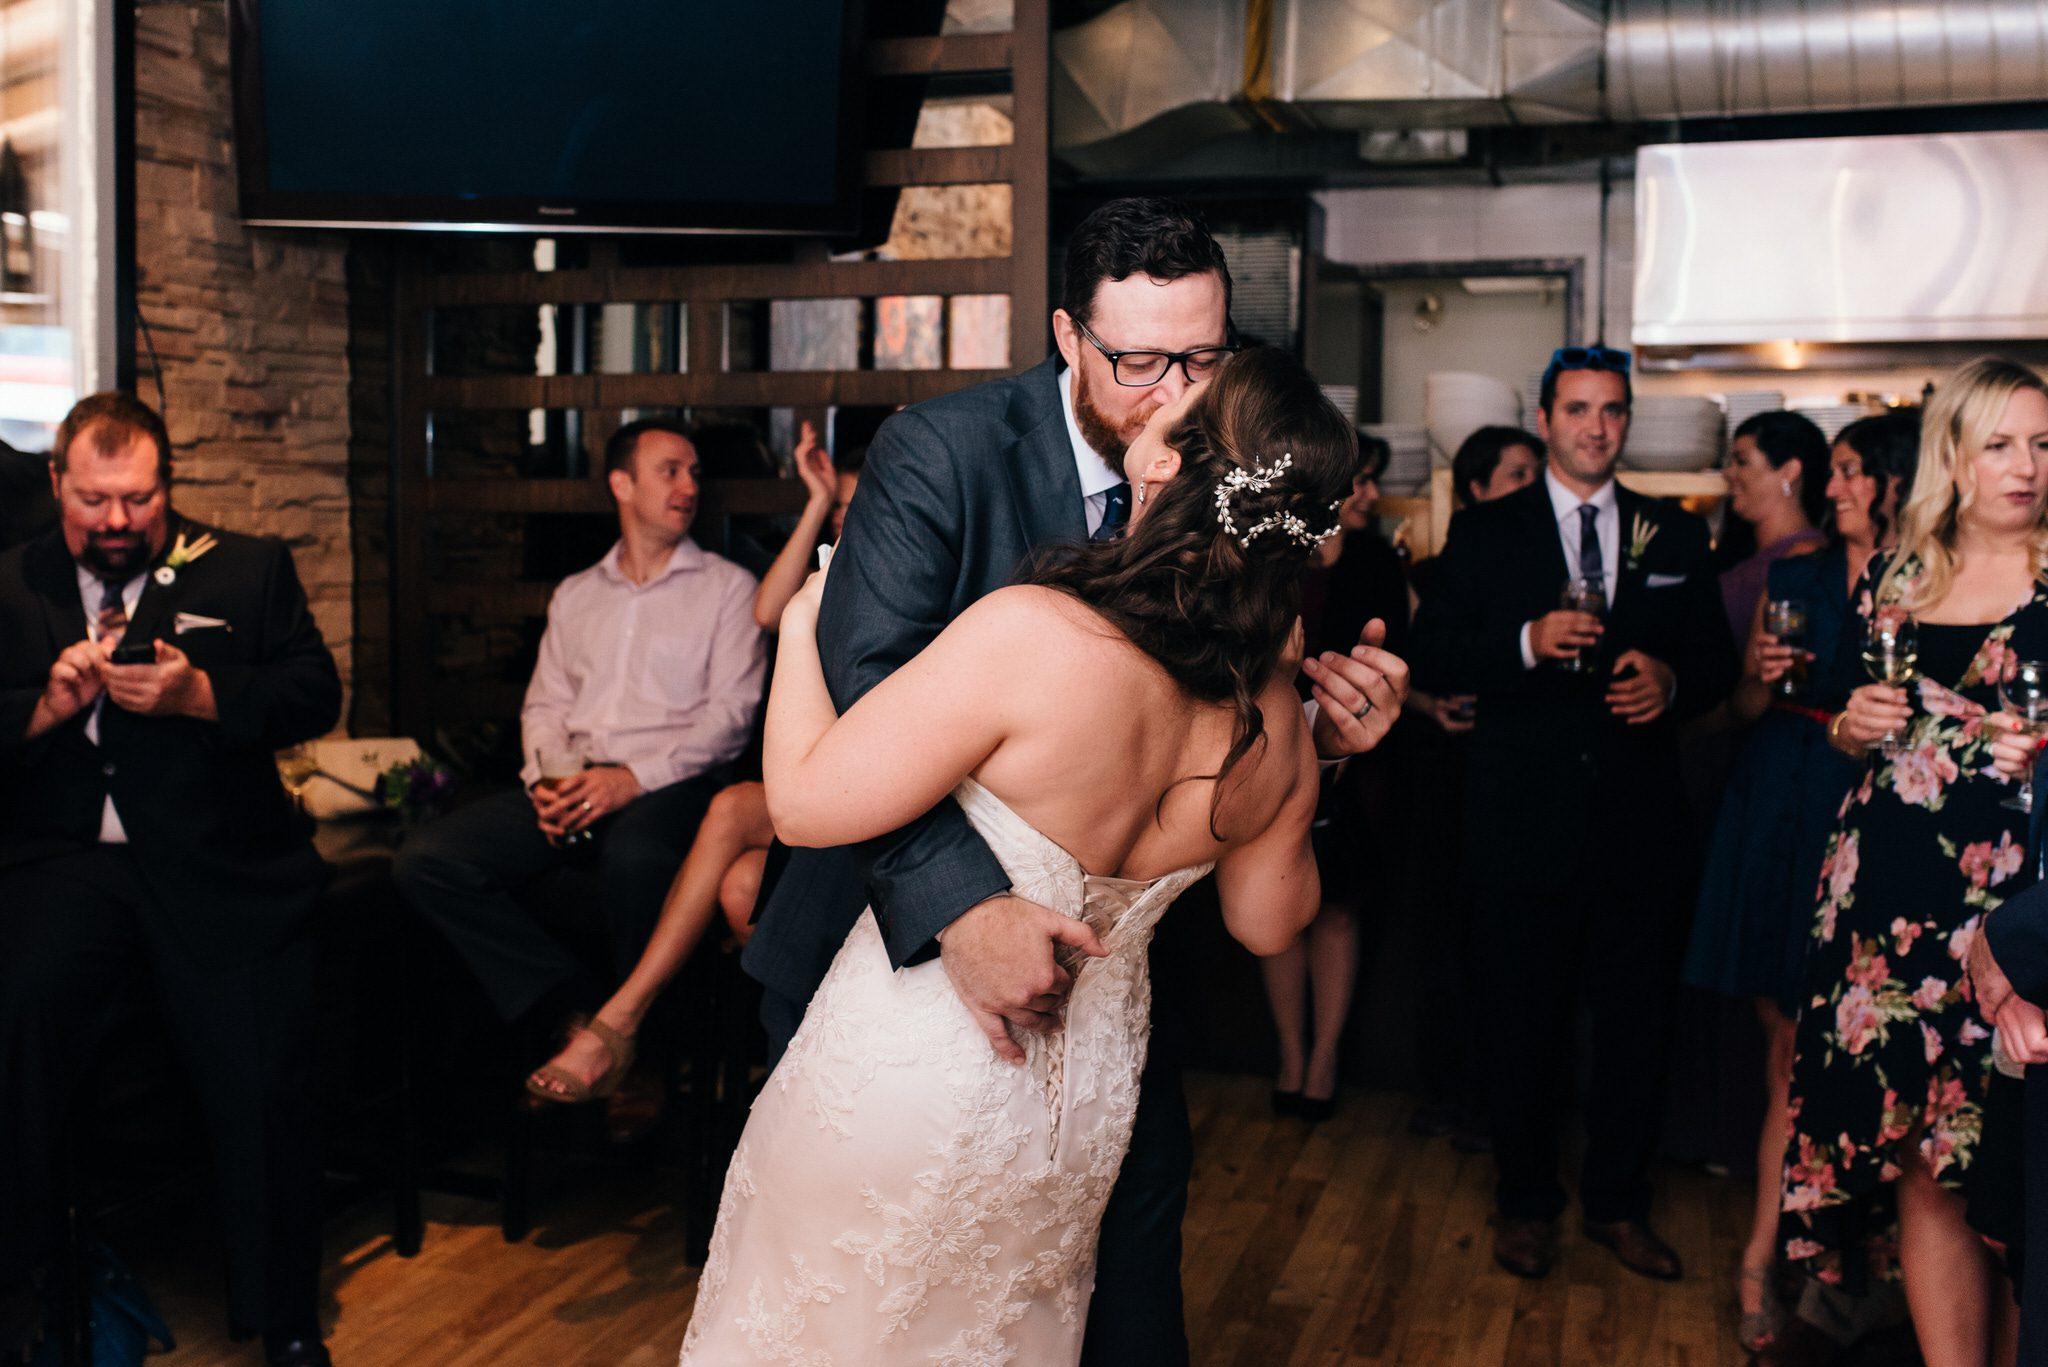 The bride and groom's first dance ends with a kiss at The Rushton Restaurant for their wedding reception.